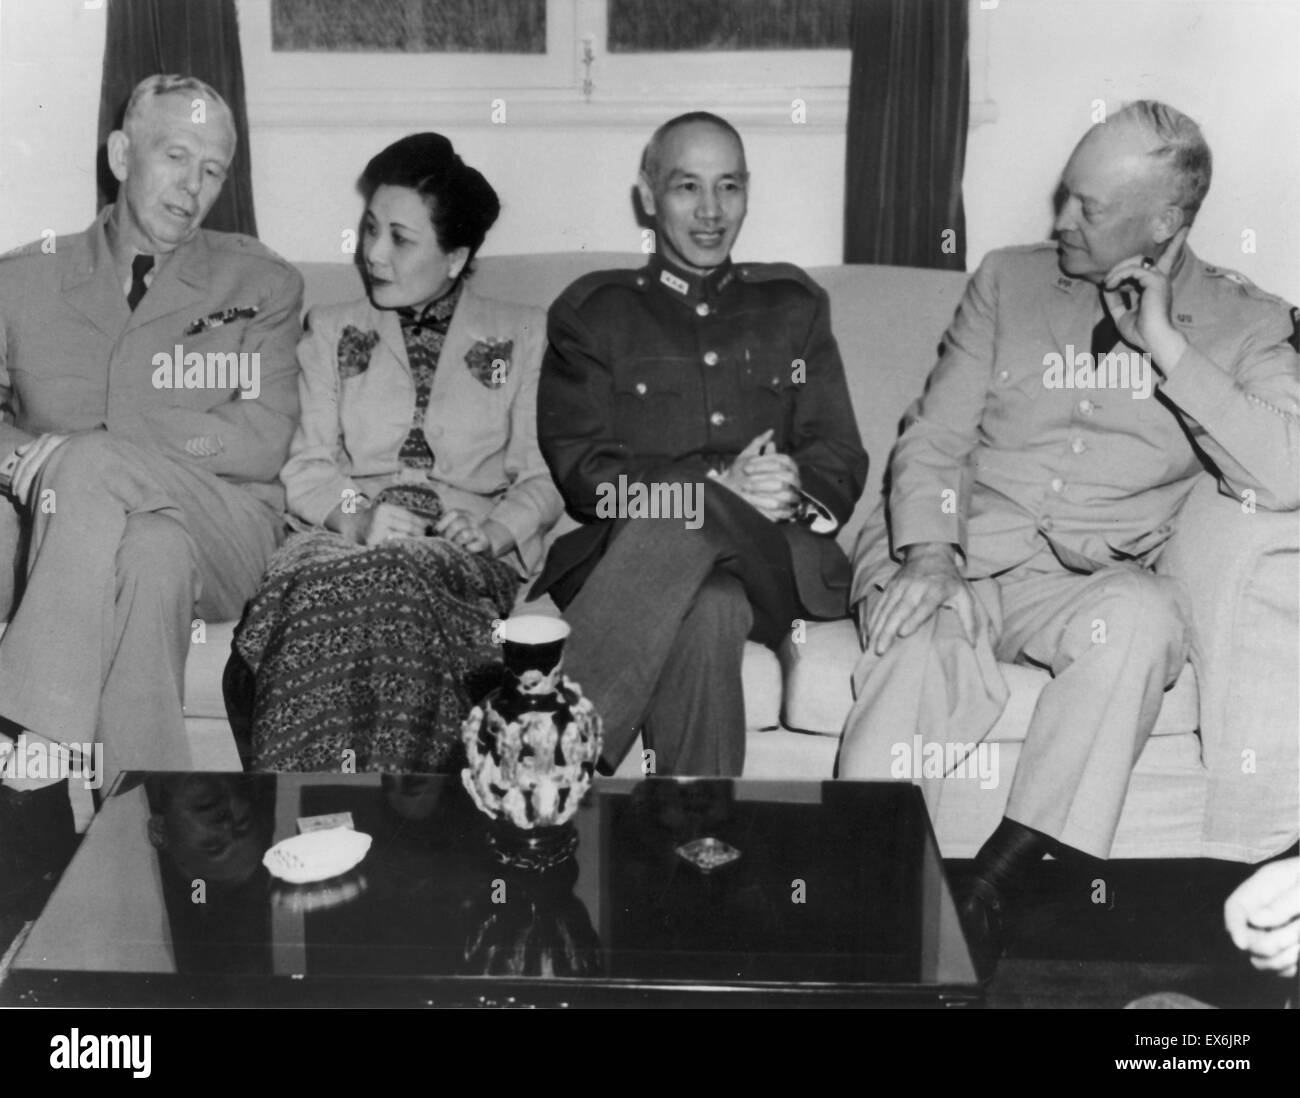 George Marshall, Song Meiling, Chiang Kai-shek, and Dwight Eisenhower, circa 1946 - Stock Image